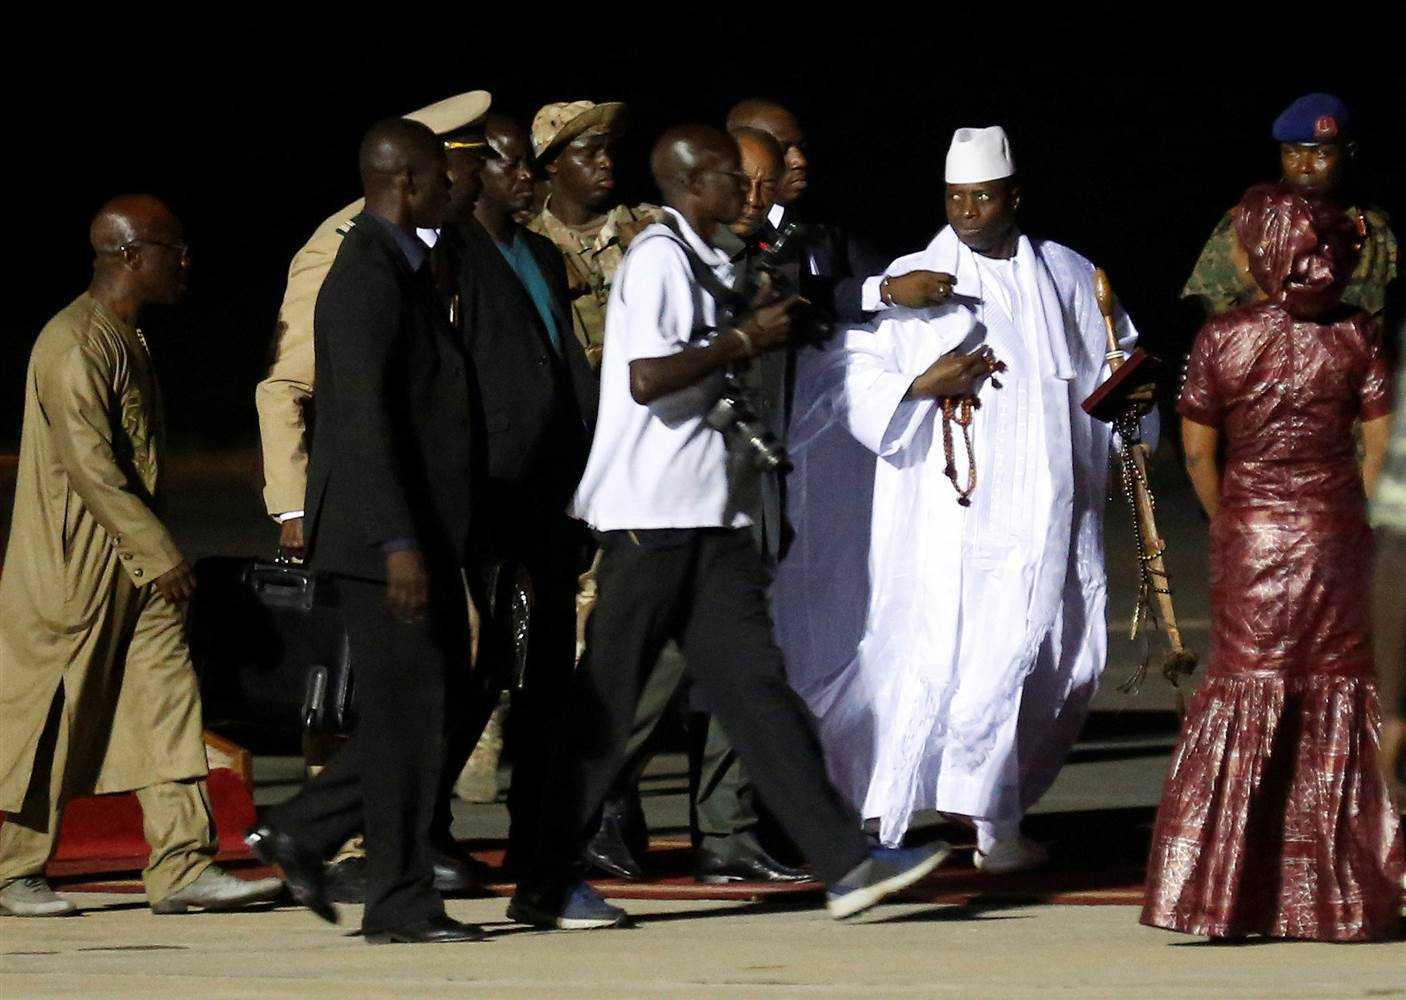 HH happy ECOWAS removed Gambian dictator